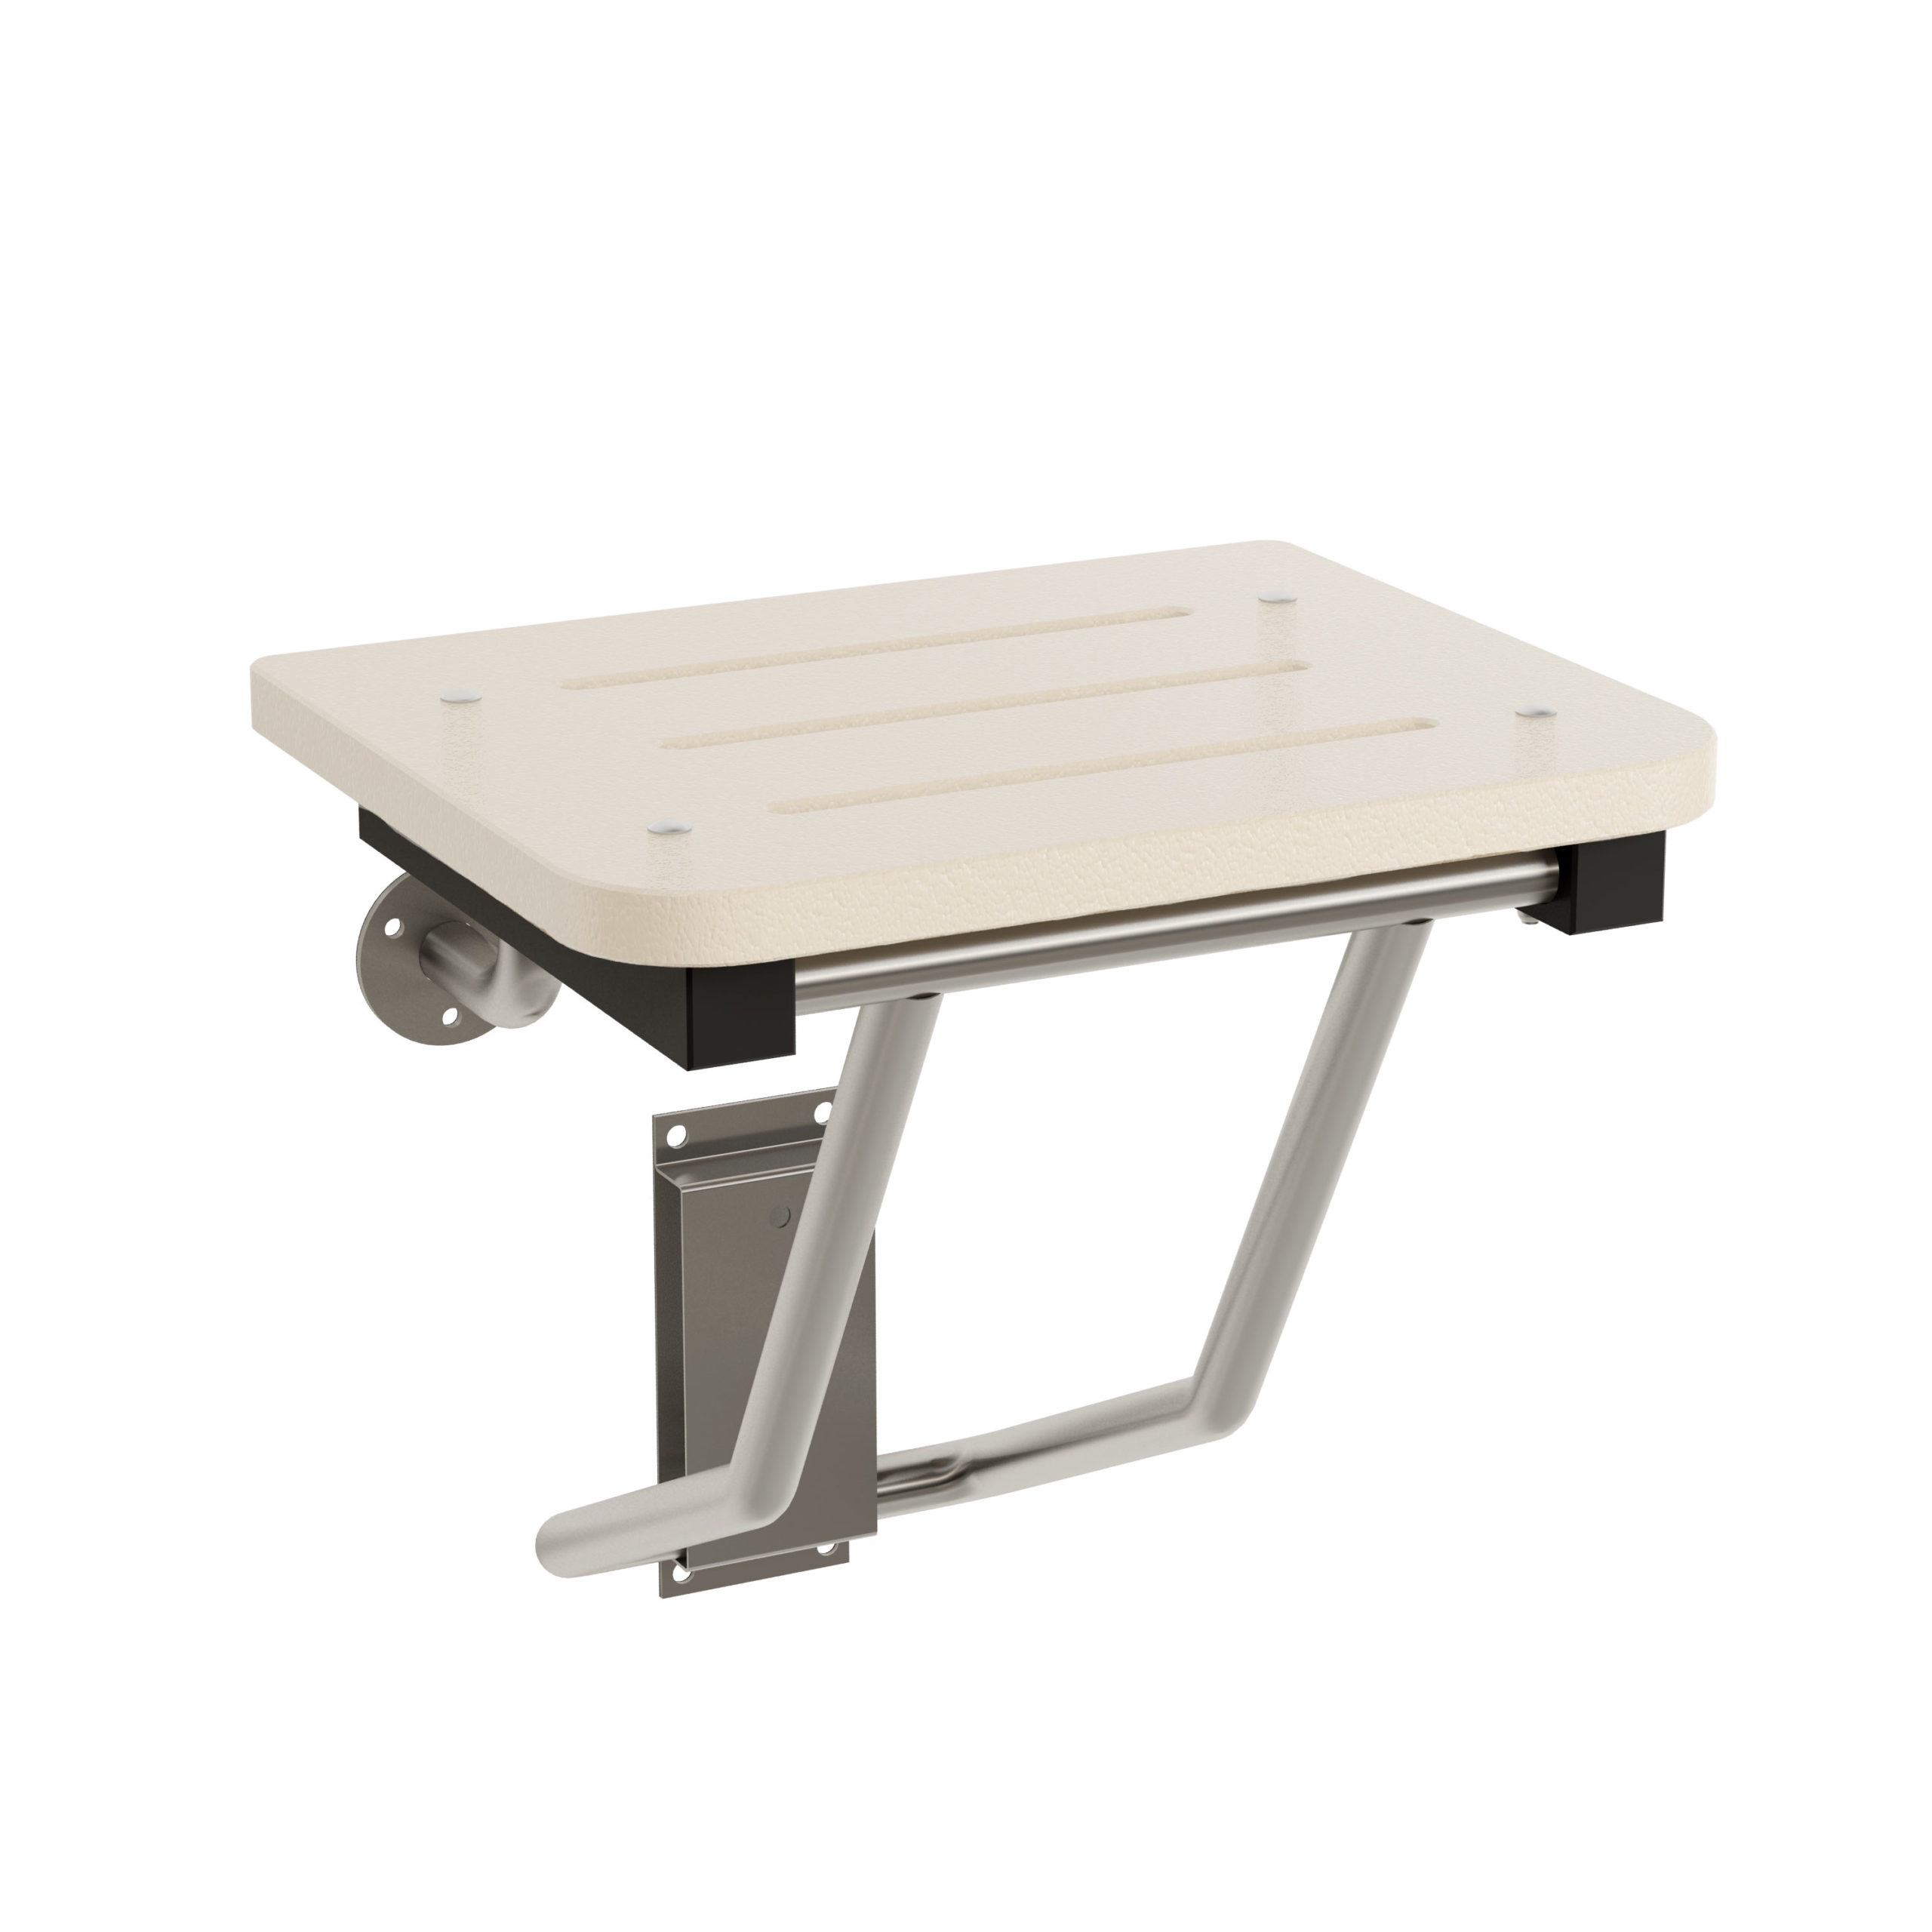 Bradley 9592 Folding Square Shower Seat - White, Bradmar